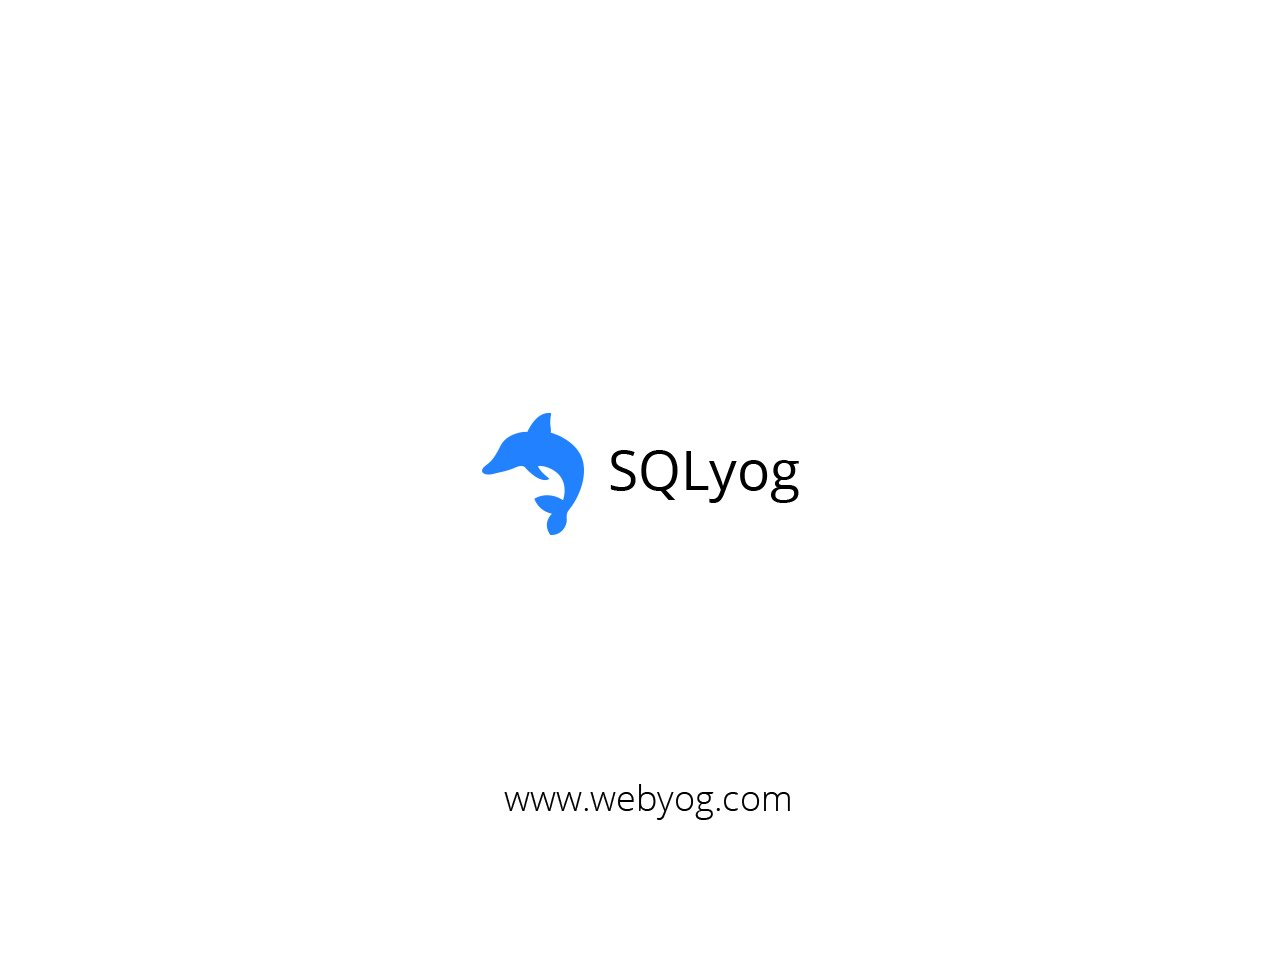 sqlyog full download torrent